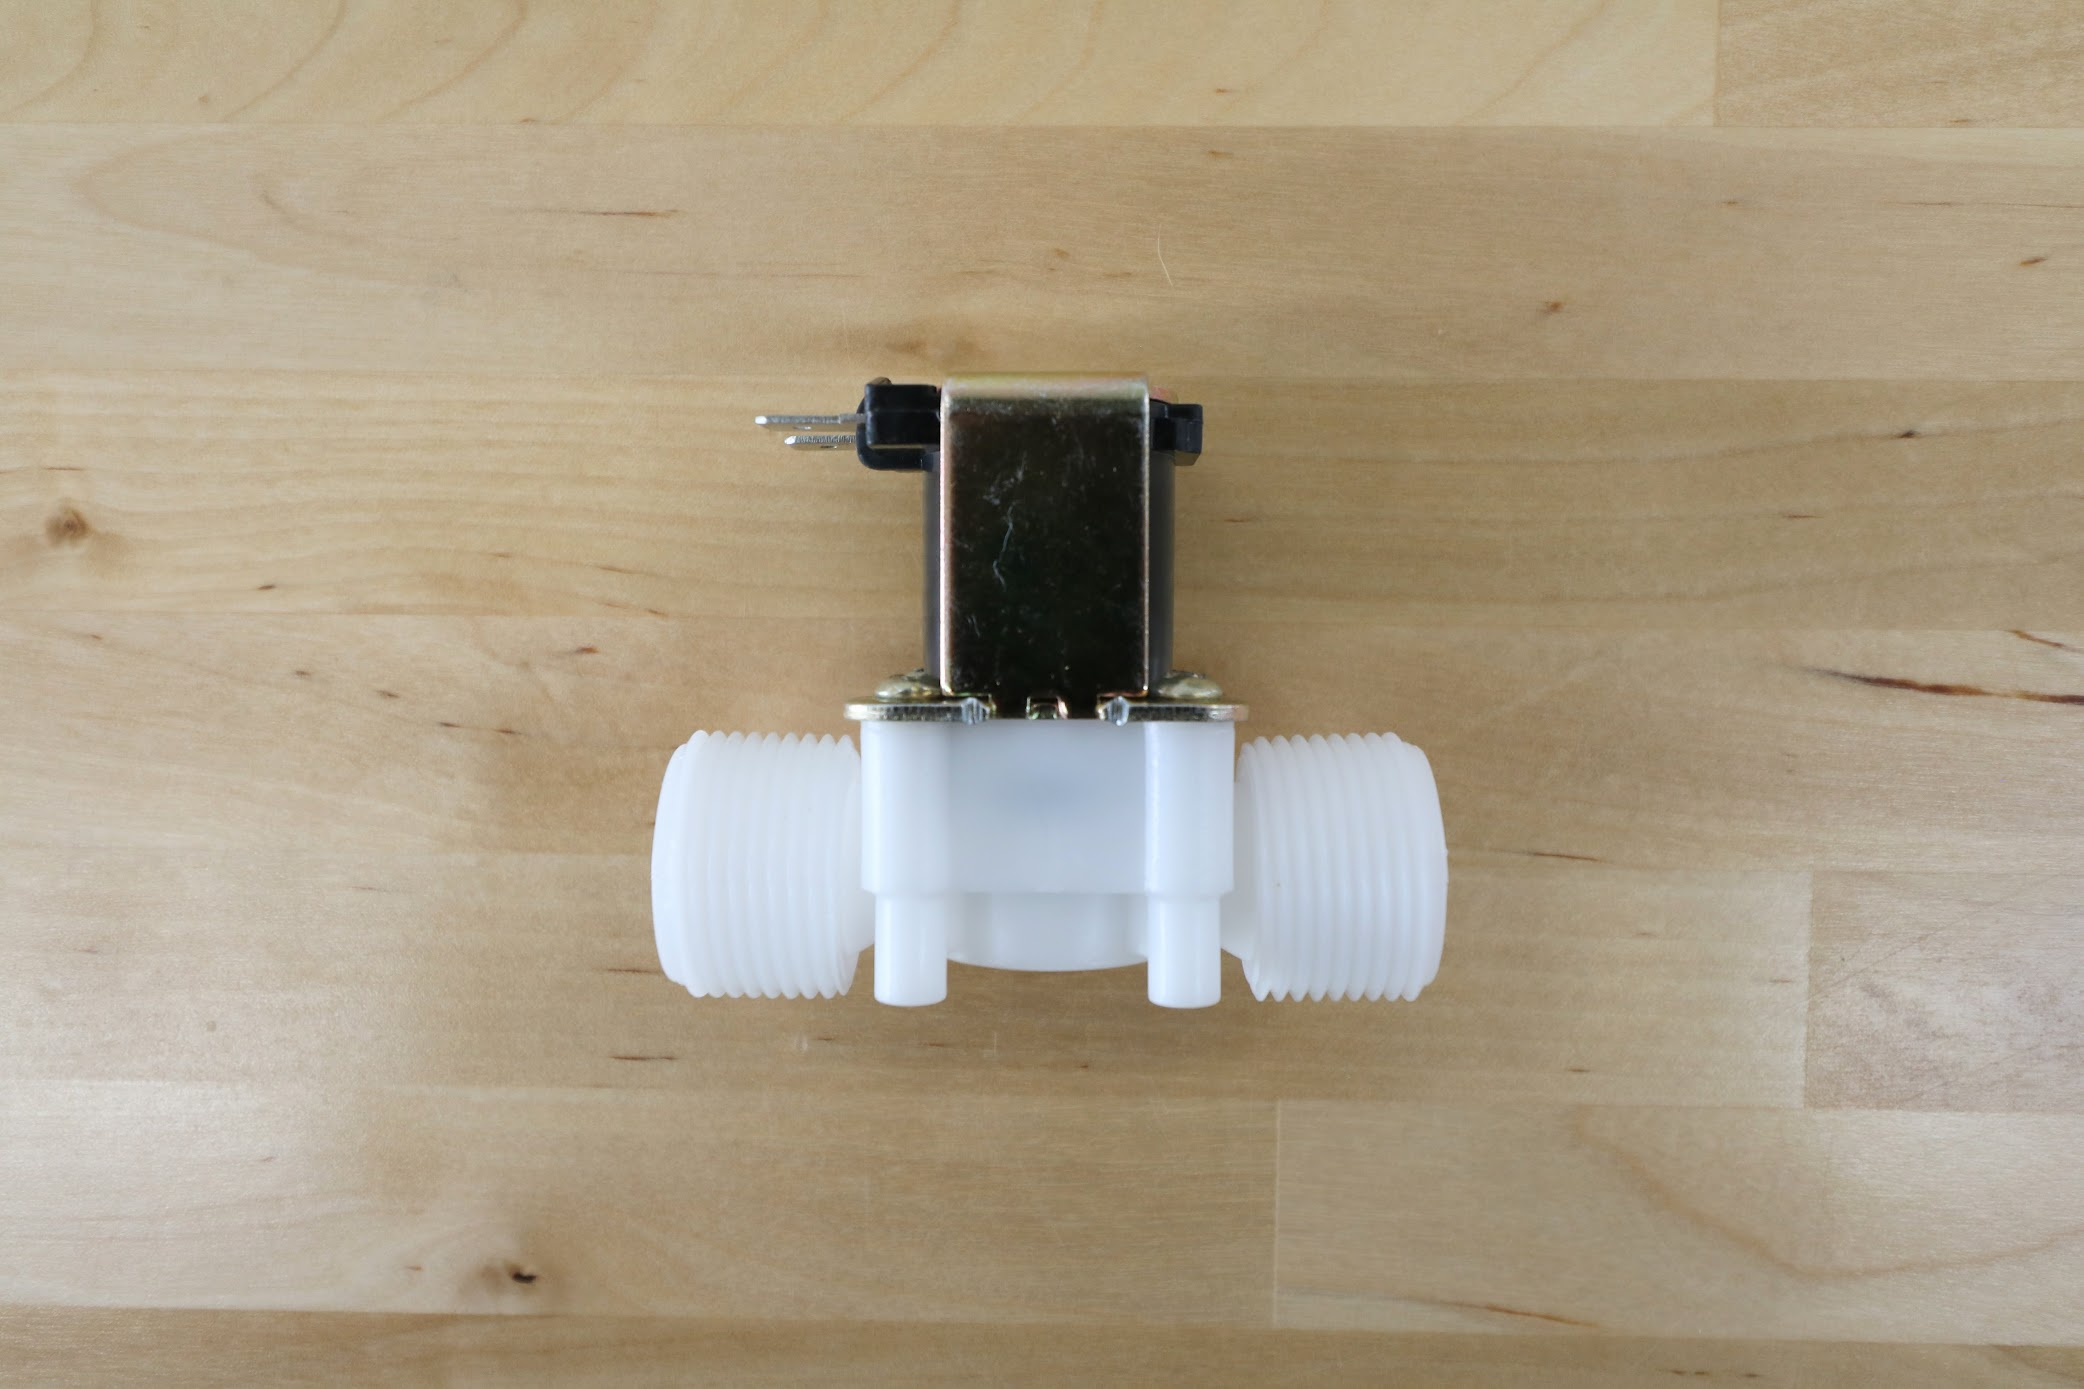 Solenoid Valve side view